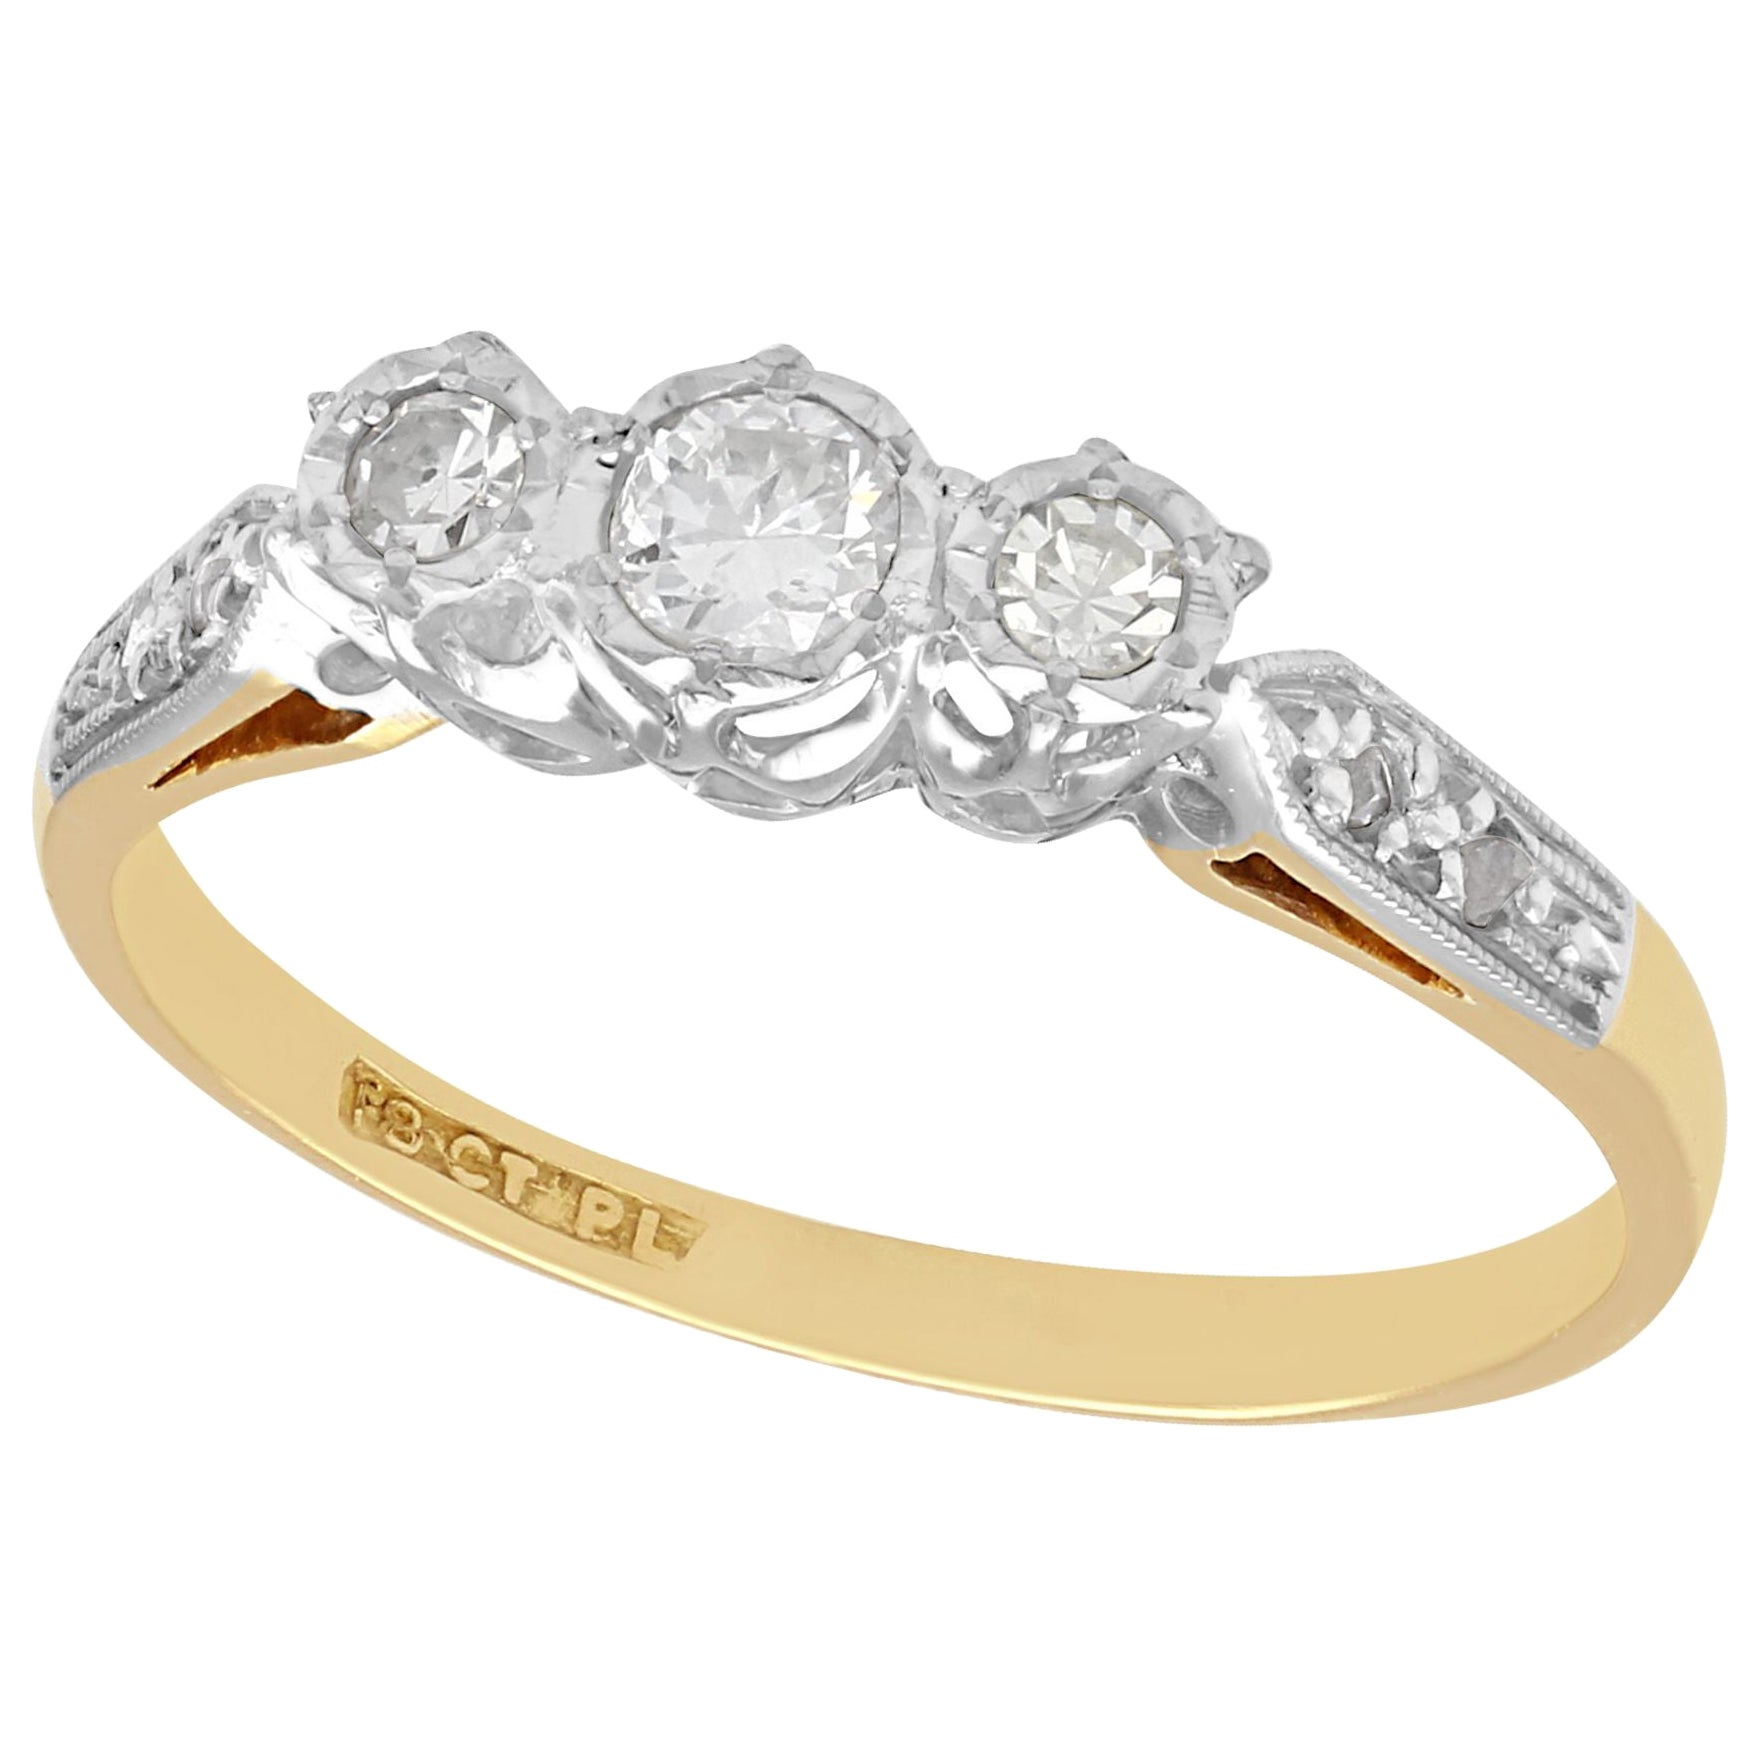 1940s Vintage Diamond and Yellow Gold Trilogy Ring